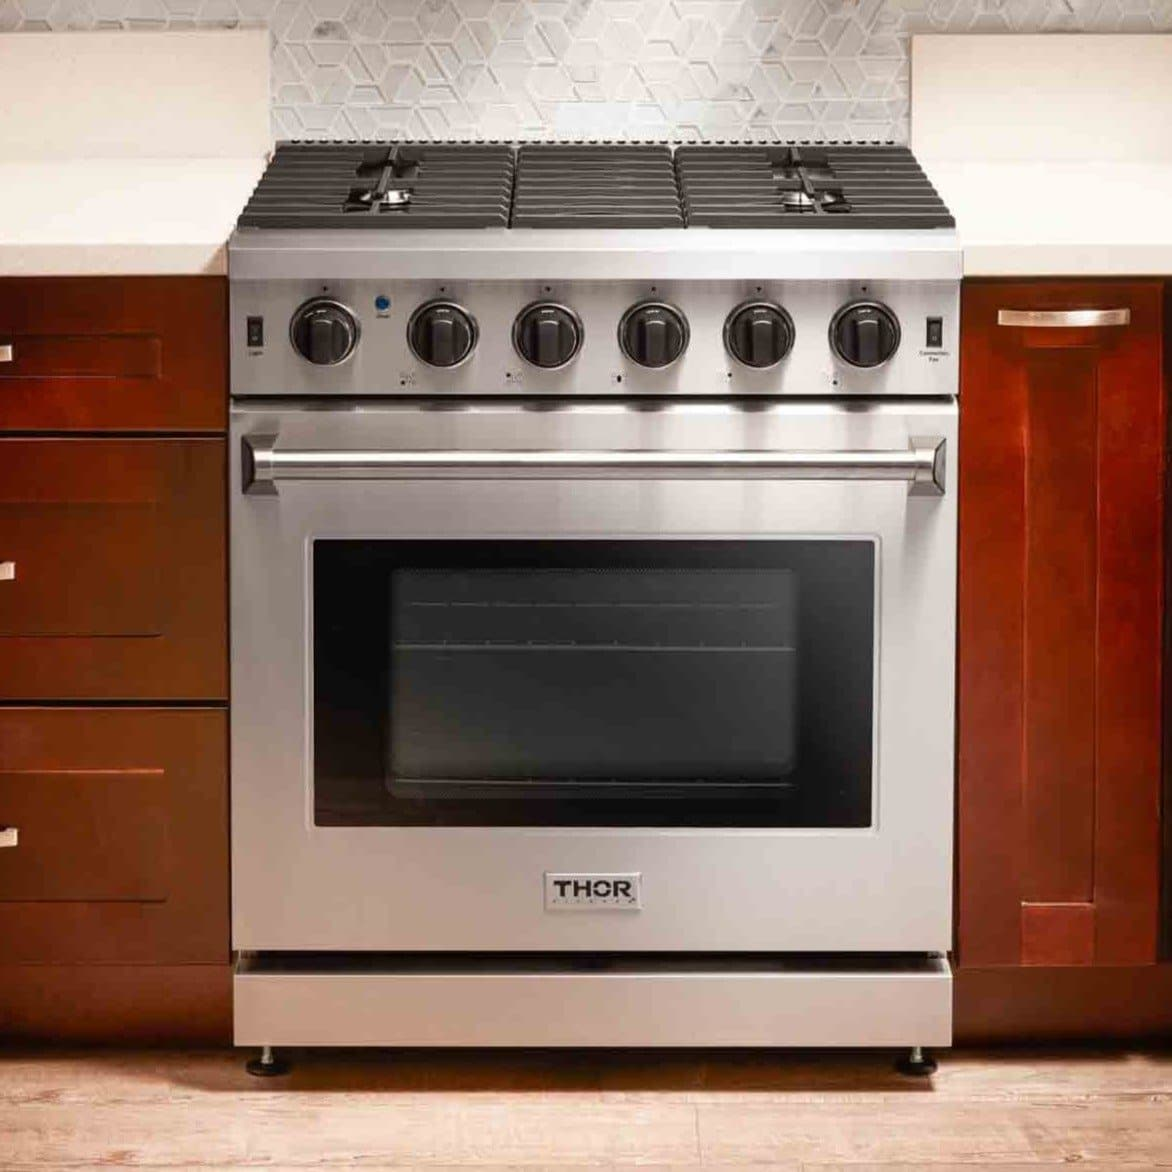 Thor Kitchen 30 4 55 Cu Ft Professional Gas Range In Stainless Stee Homeflamestore Com